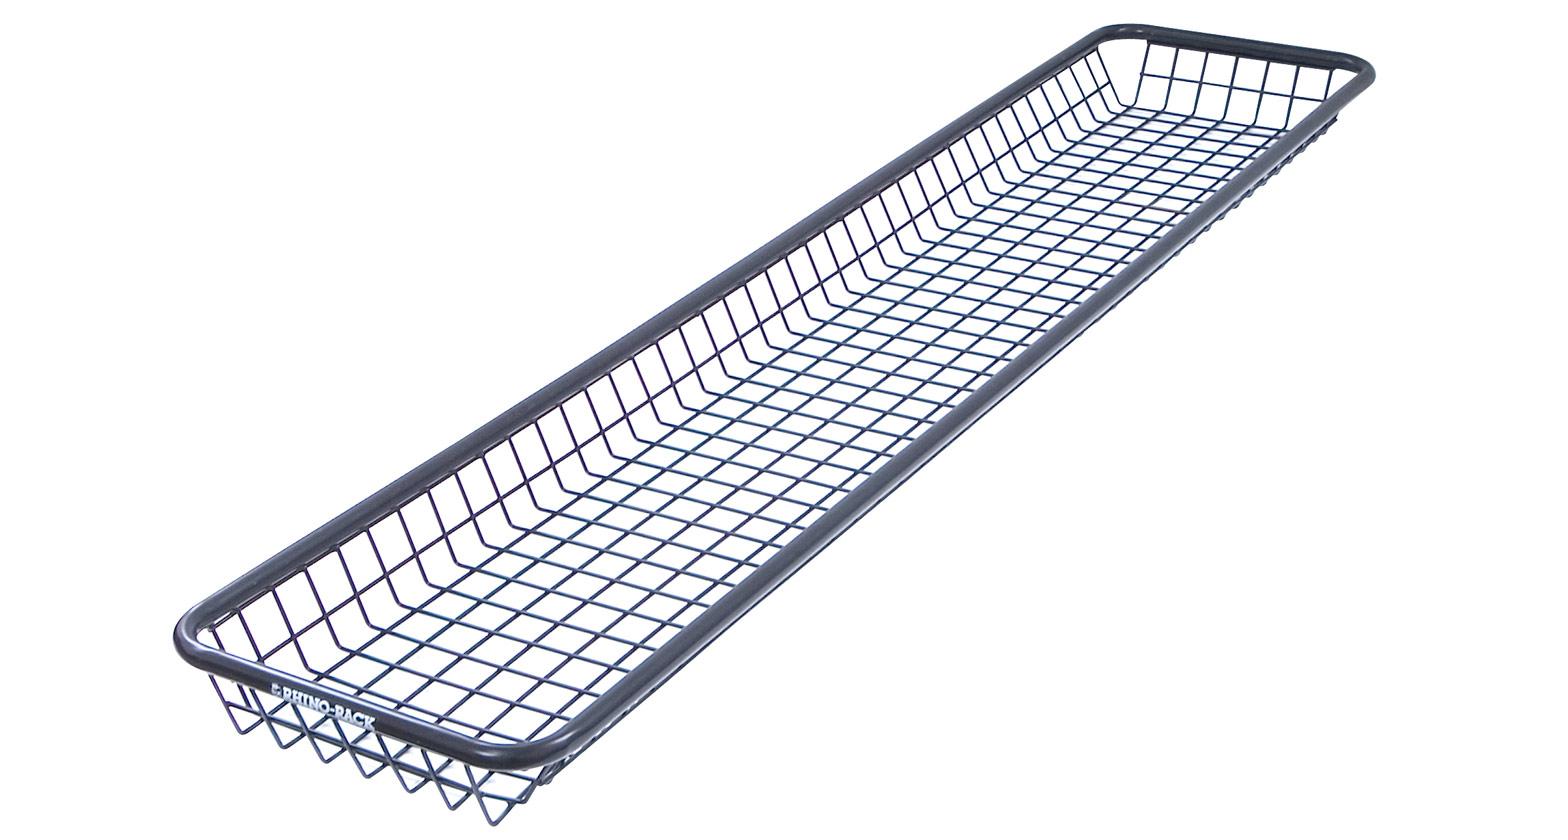 Rlbn Steel Mesh Basket Narrow Rhino Rack